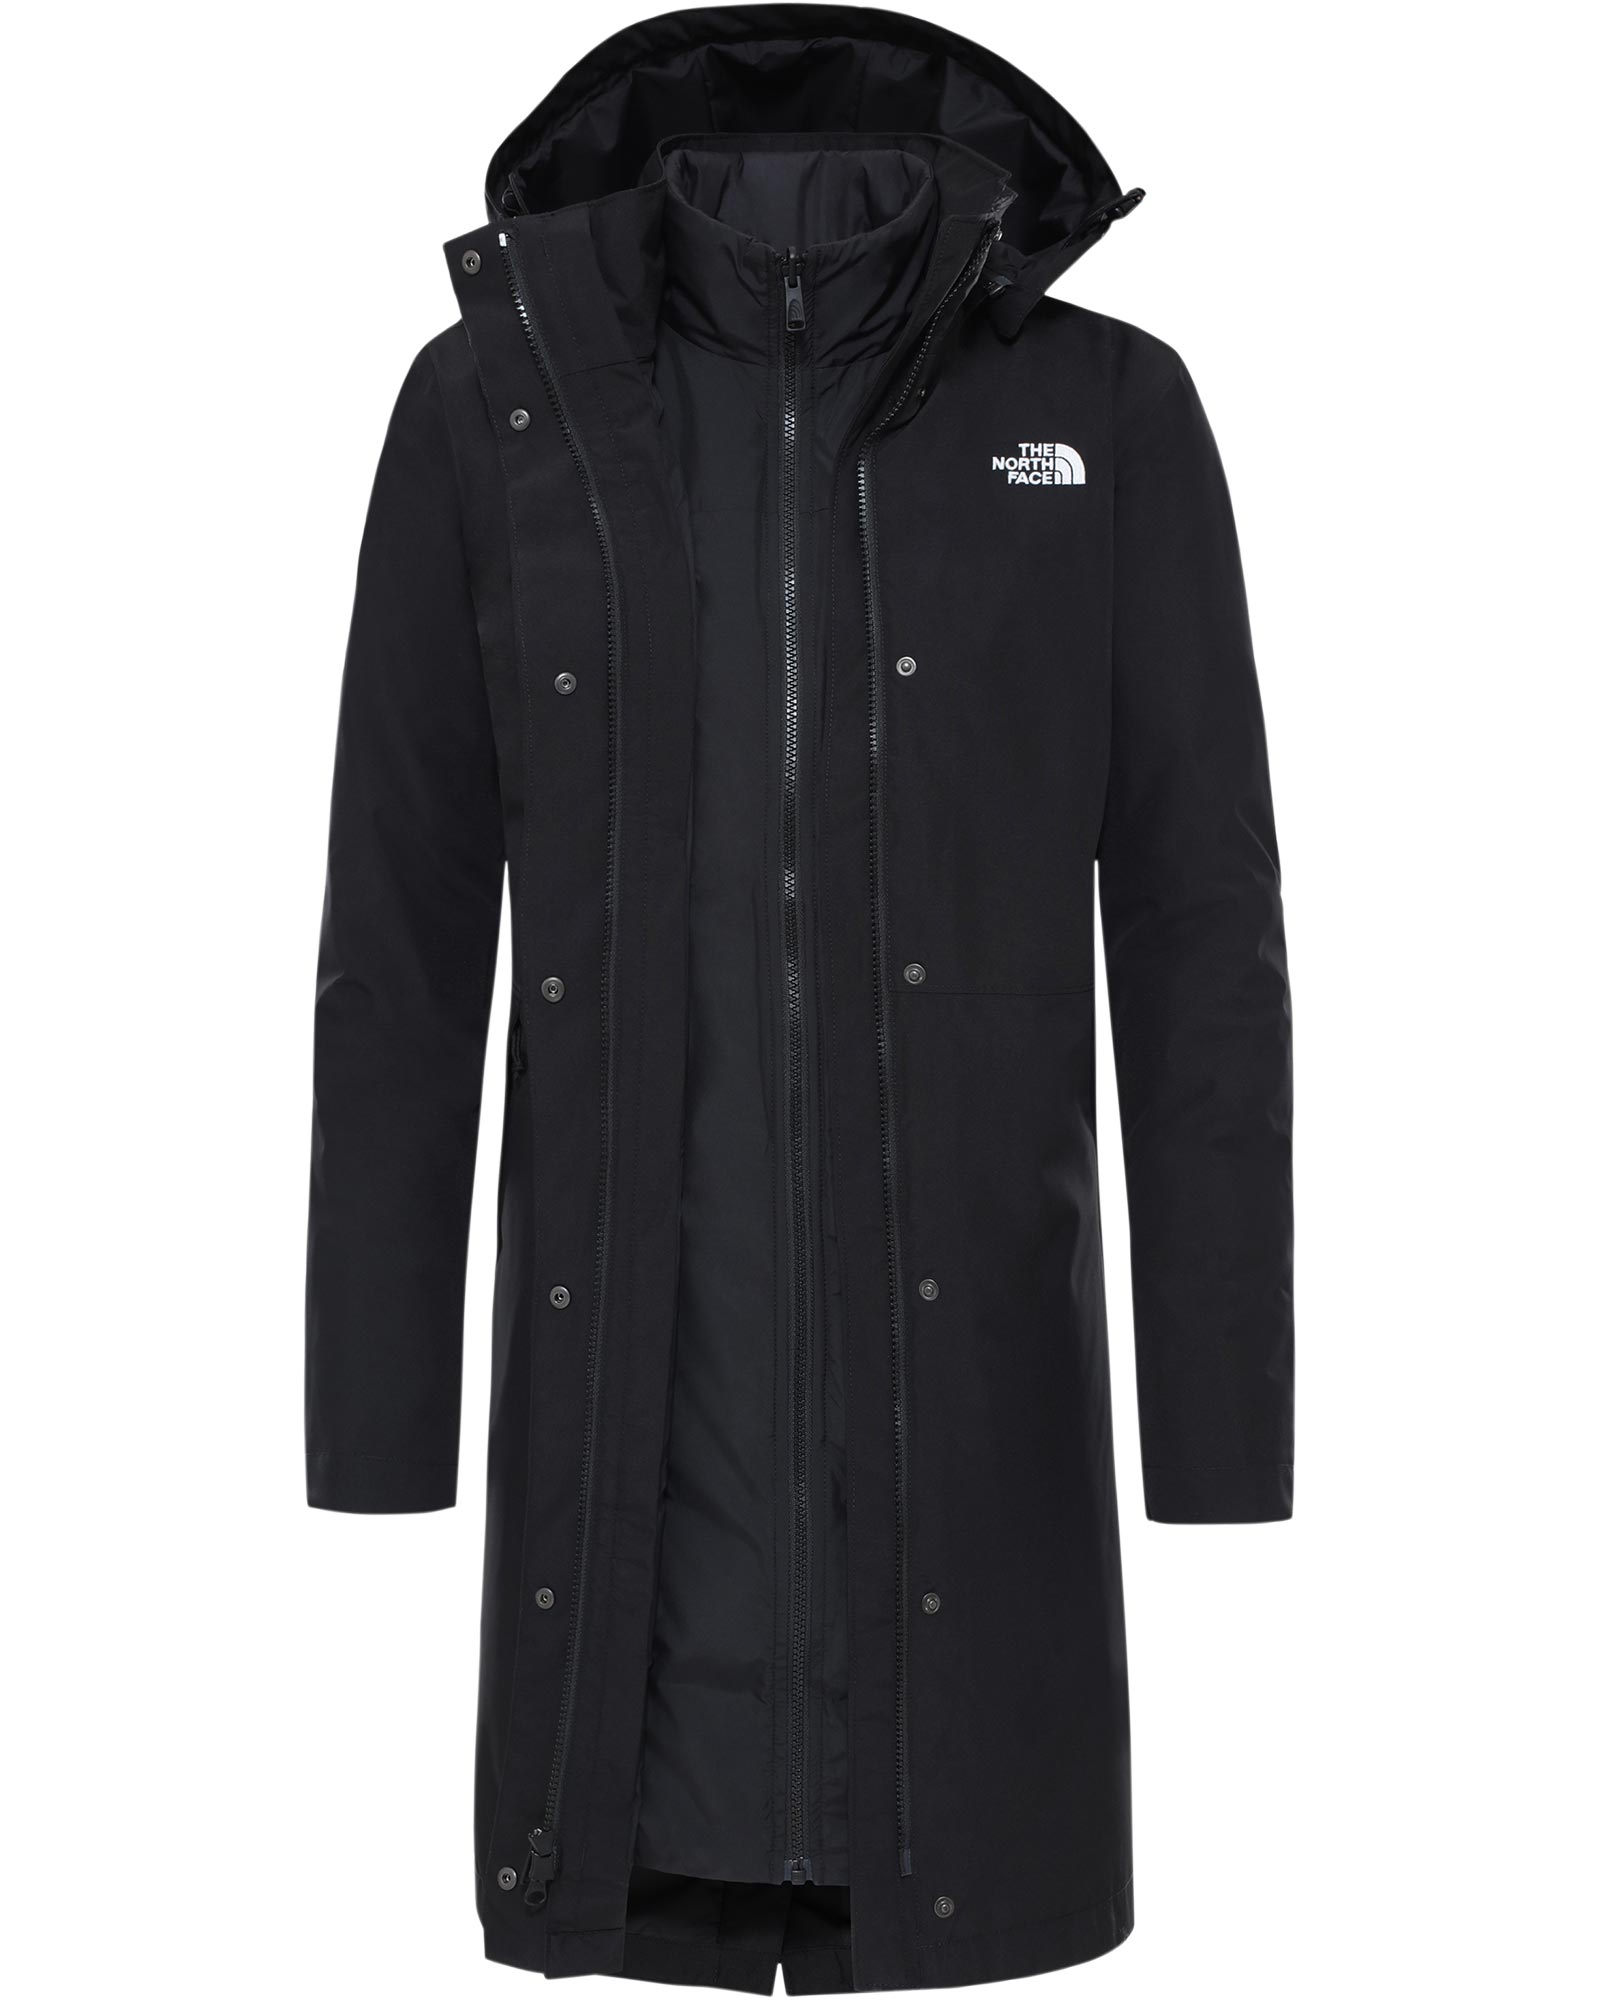 The North Face Women's Suzanne Triclimate Parka Jacket 0